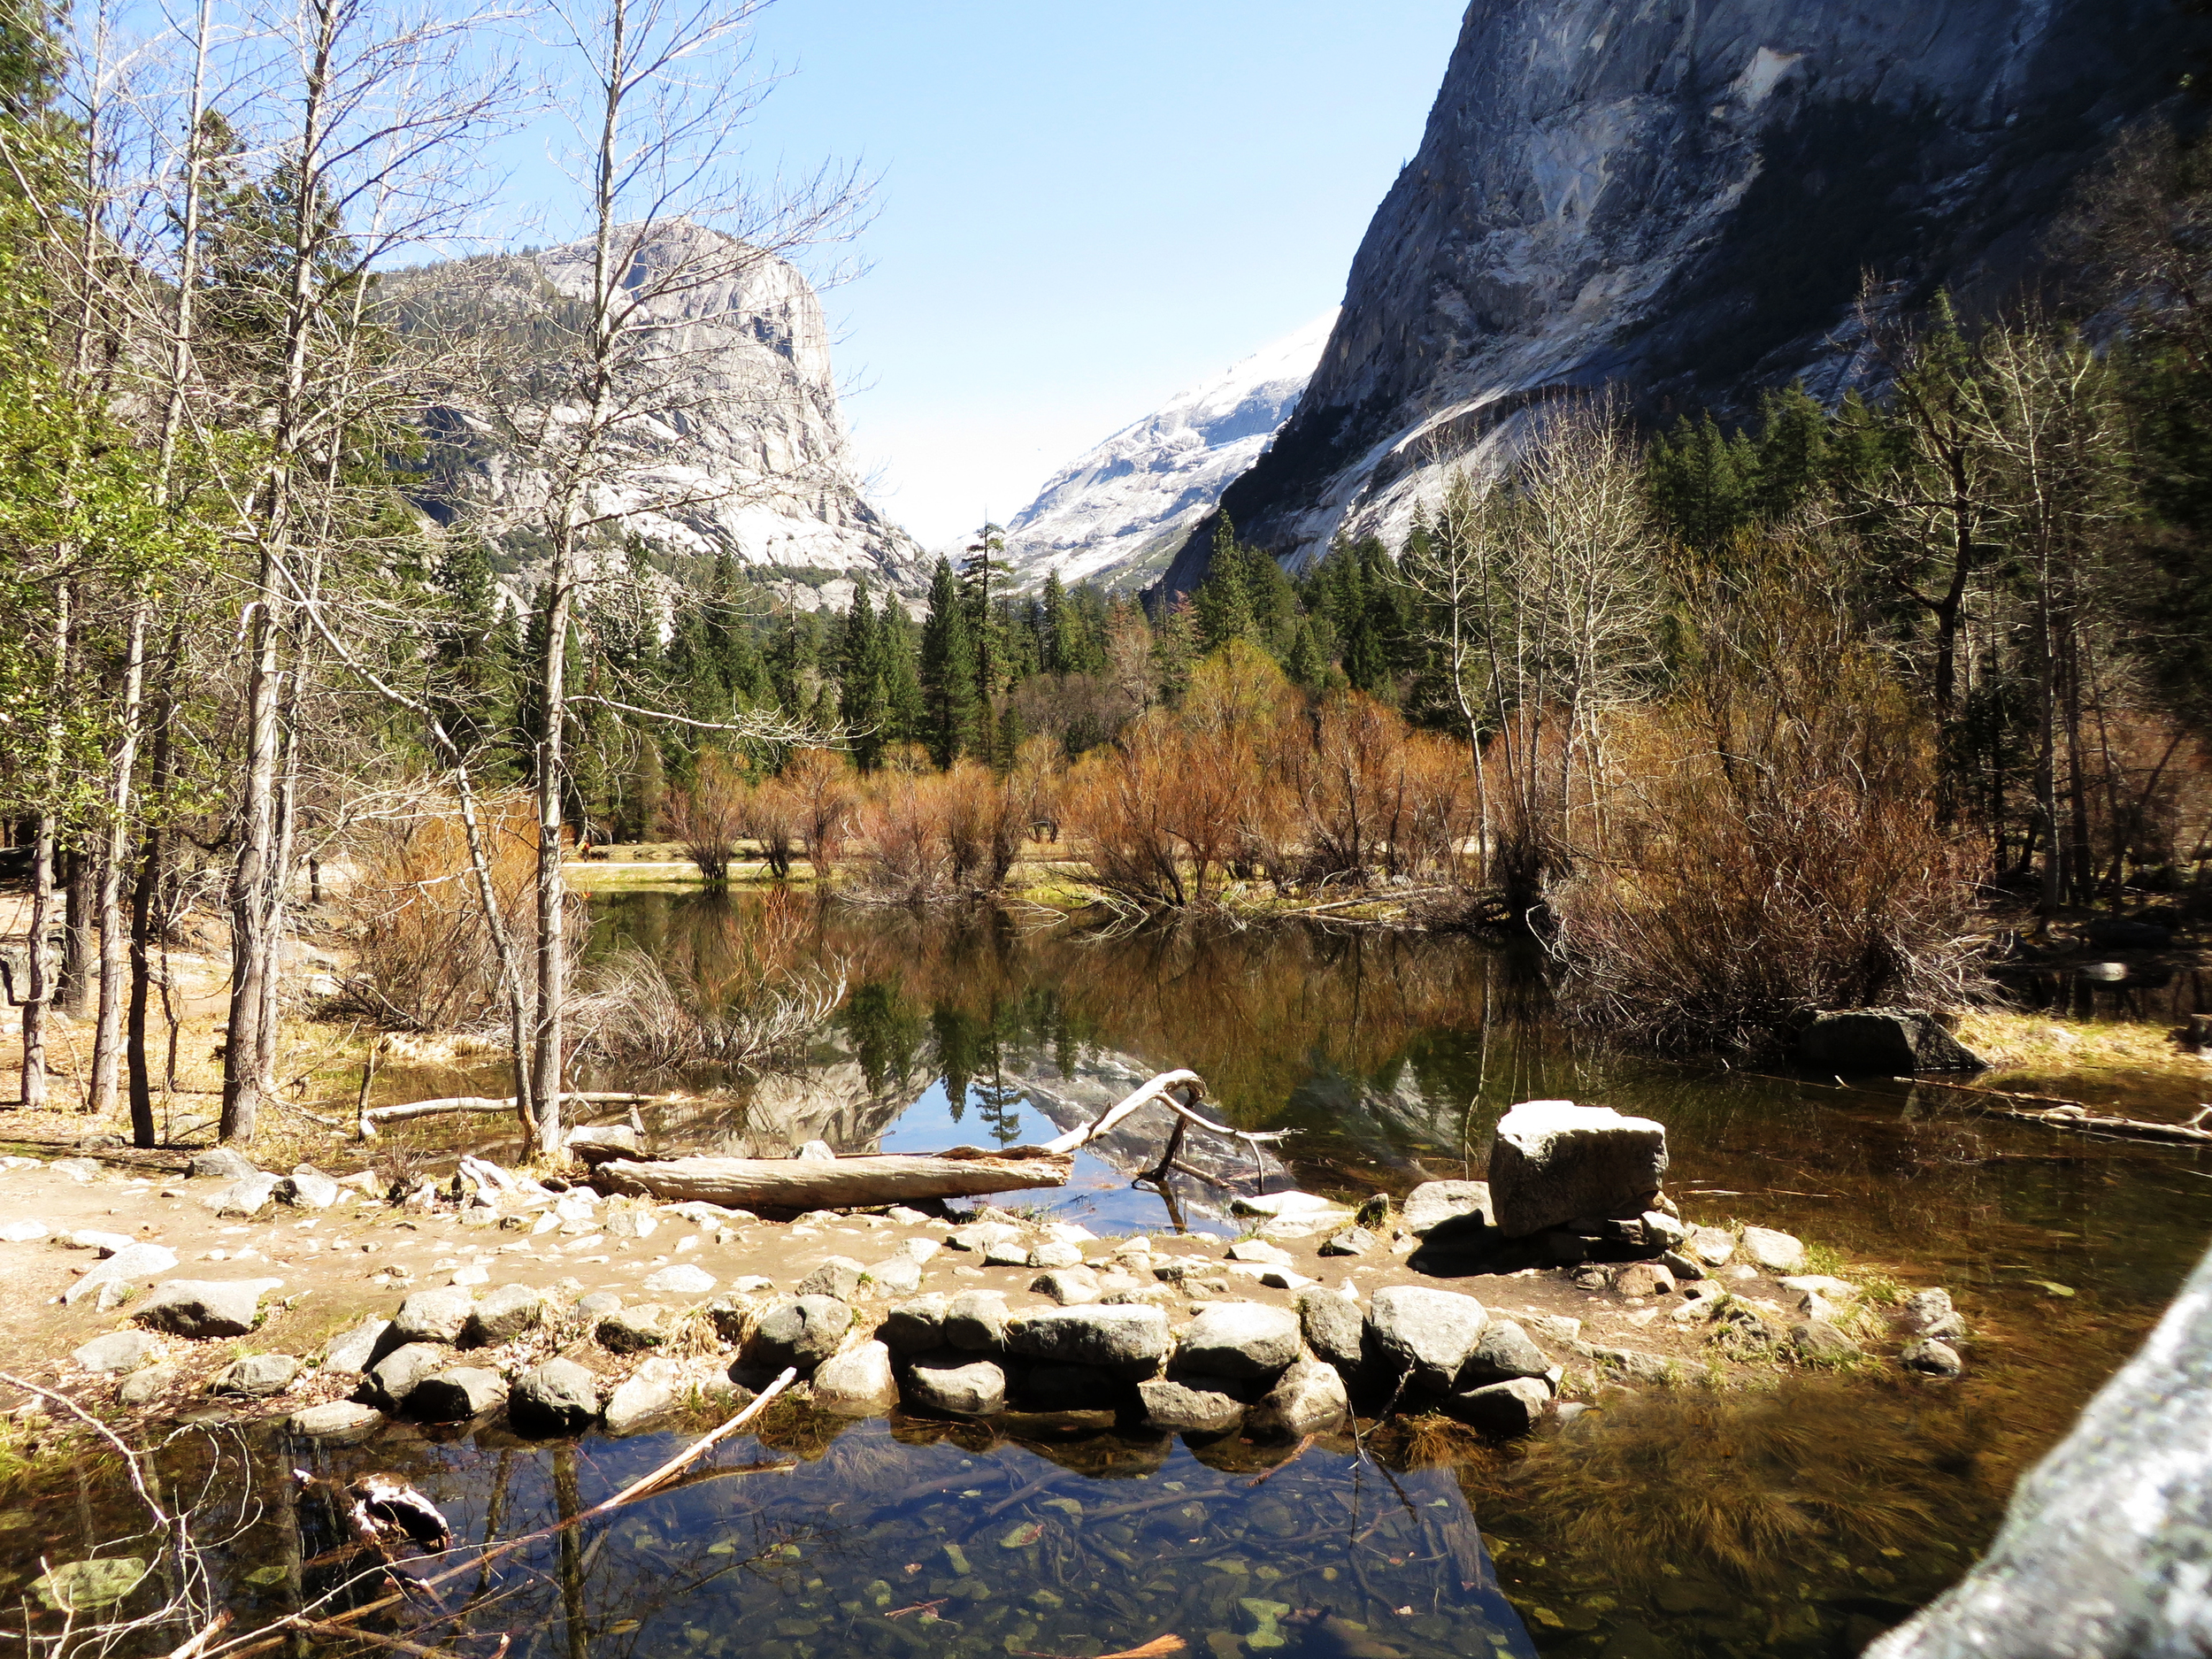 Photo by Jack, age 9 - Yosemite CA